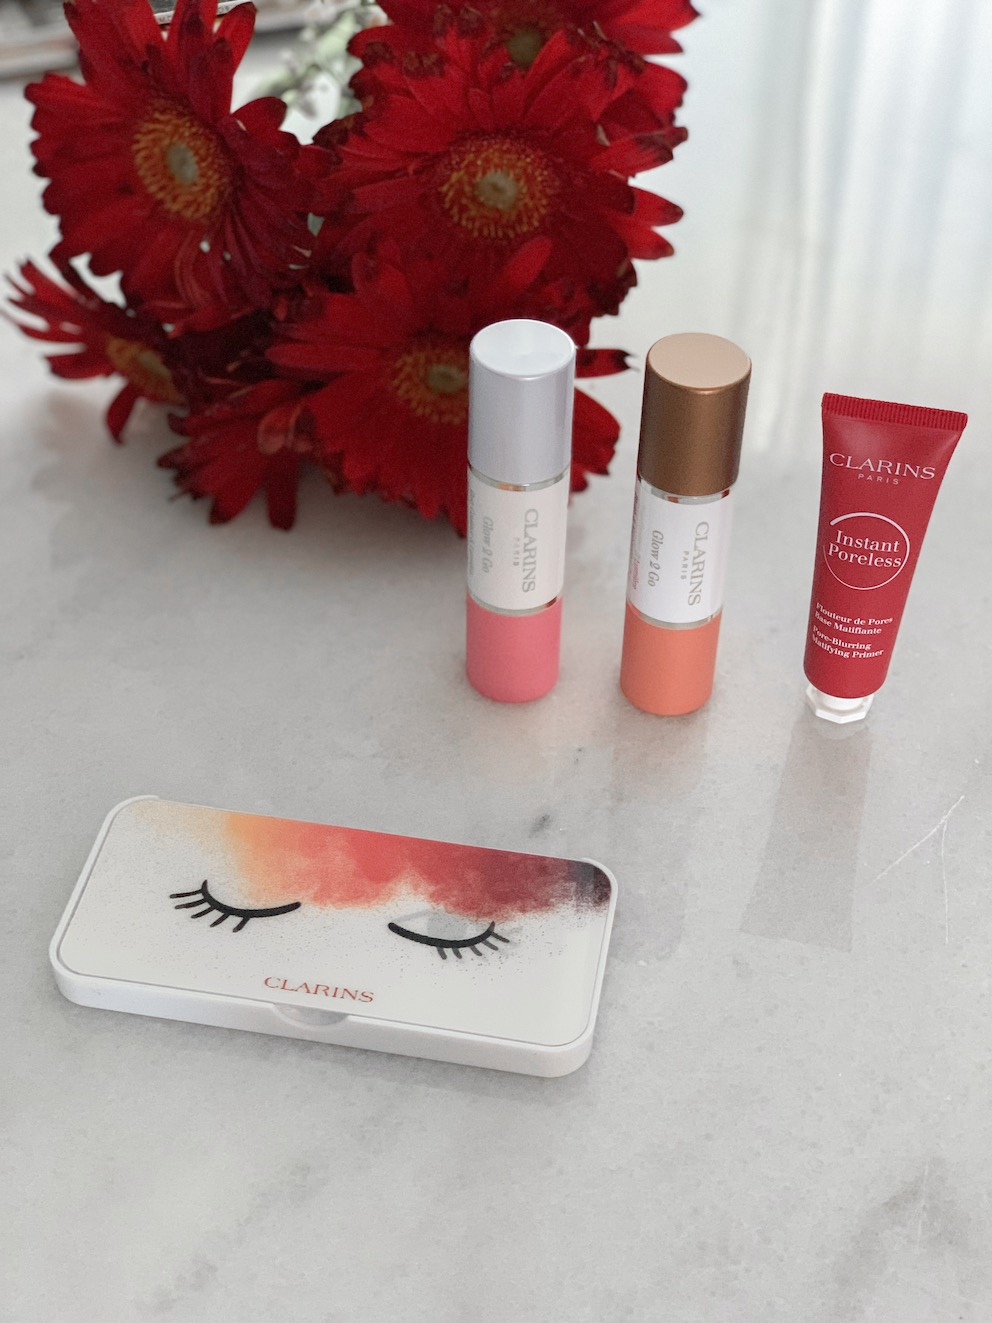 Selfie Ready with Clarins: arriva la collezione make-up Primavera 2019